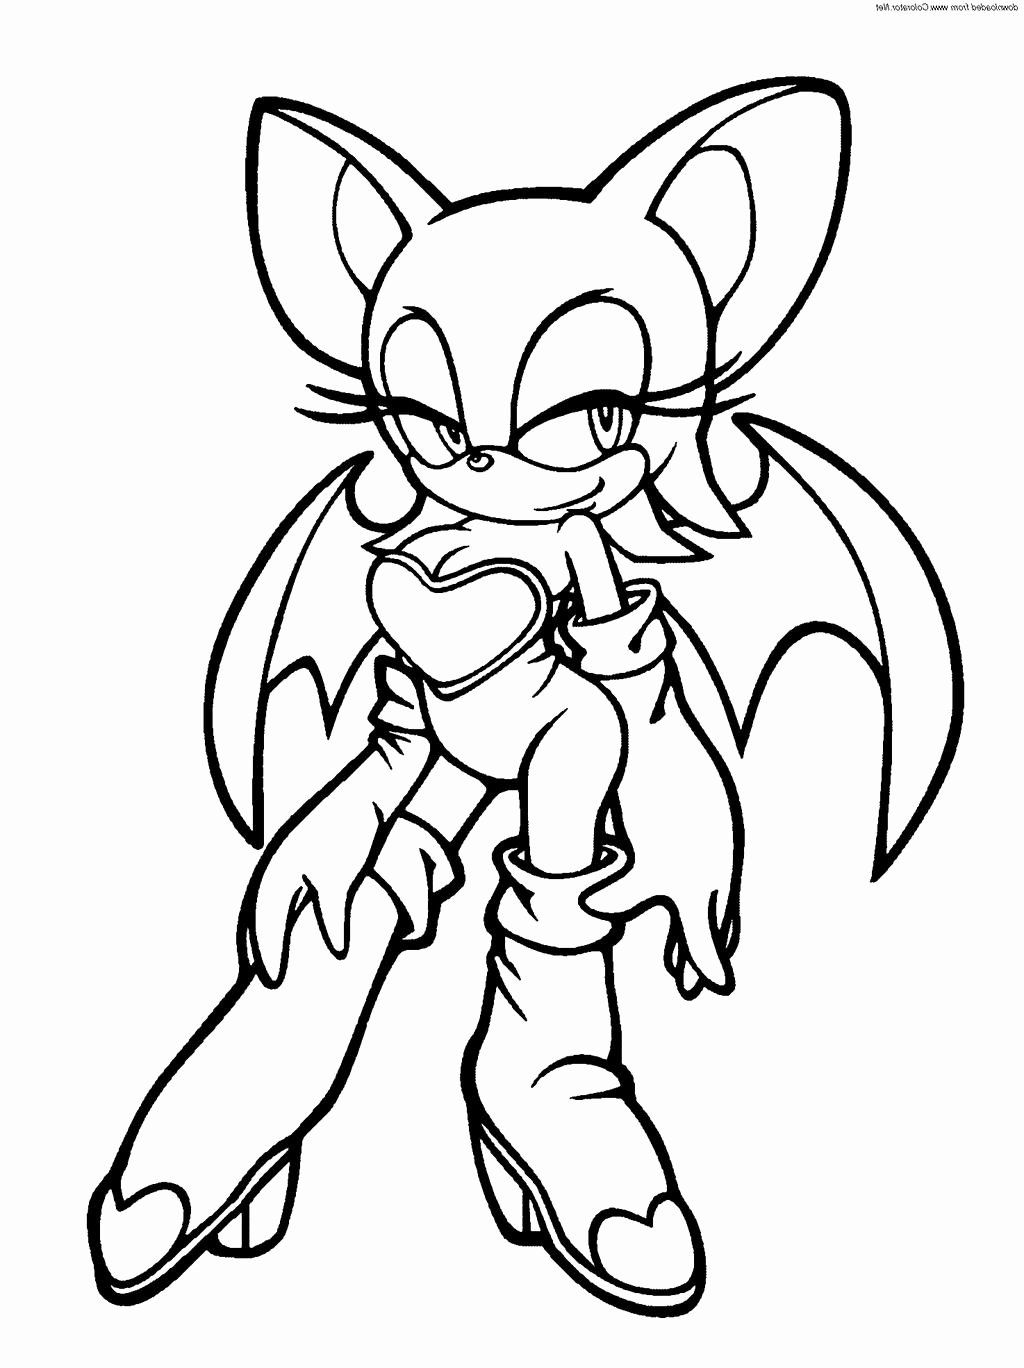 Sonic Printable Coloring Pages New Sonic X Coloring Pages Ator Oloring Characters Free Coloring Pages Printable Coloring Pages Flag Coloring Pages